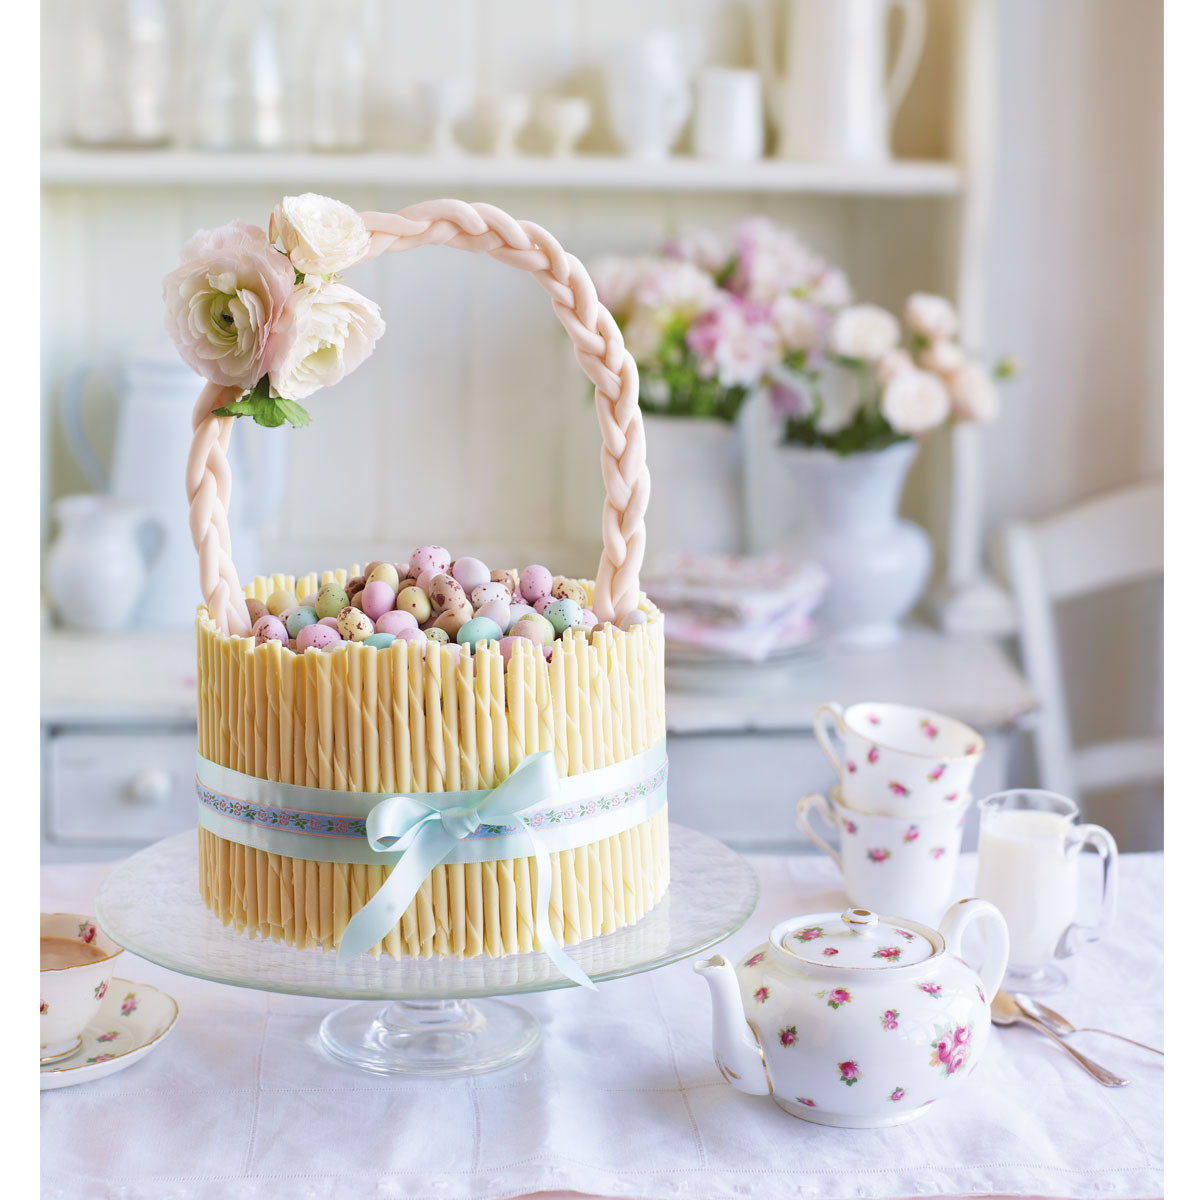 Easter Cake Recipes  Easter basket cake carrot cake recipe Good Housekeeping